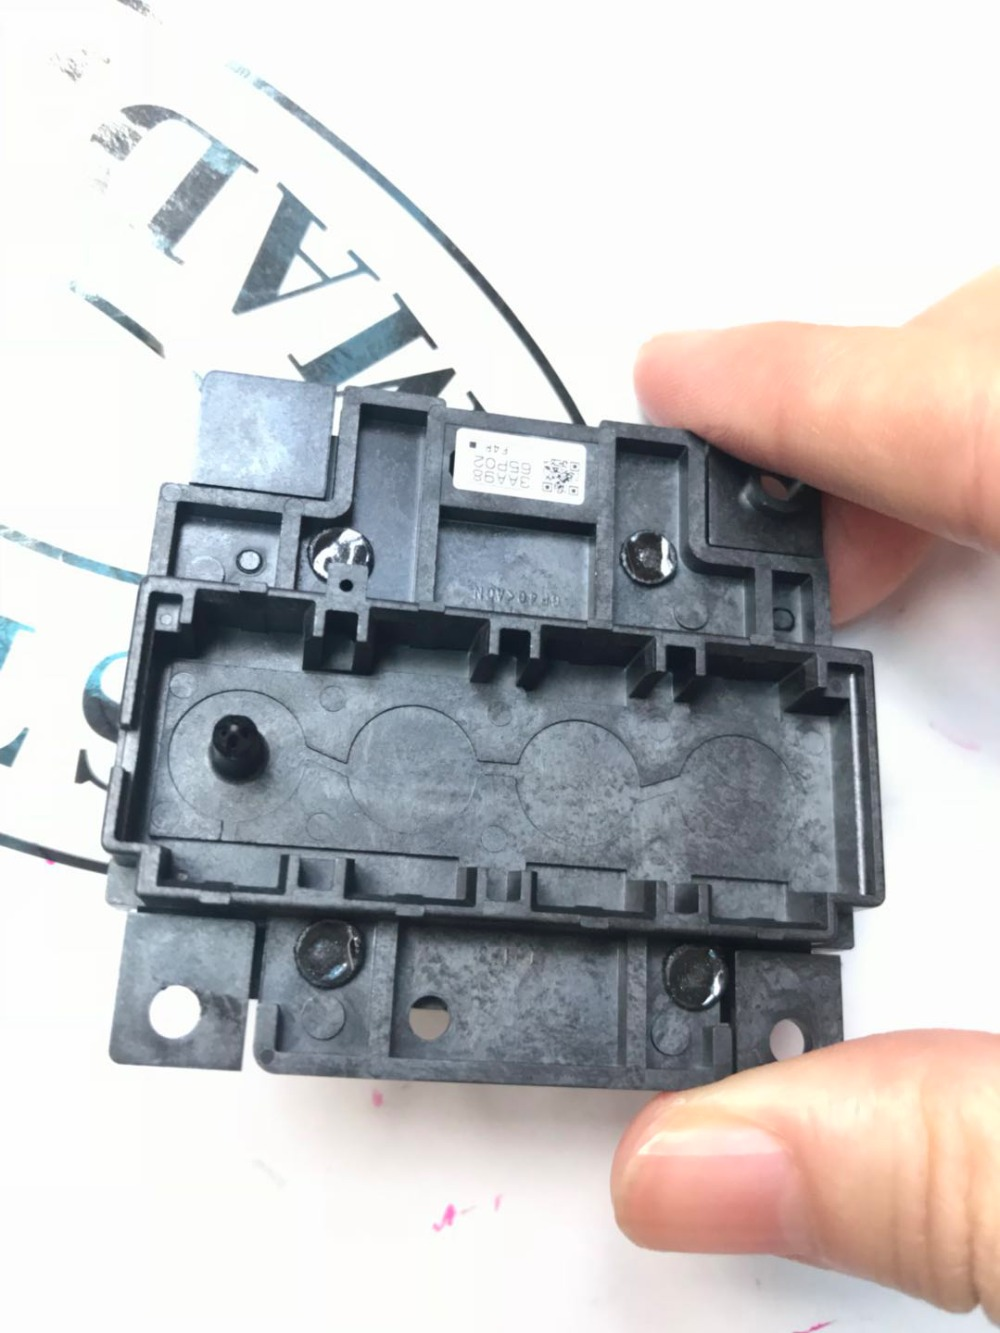 USED  Print head for EPSON M200 M205 M105 printer M101 M201 M100  Print Head used 100